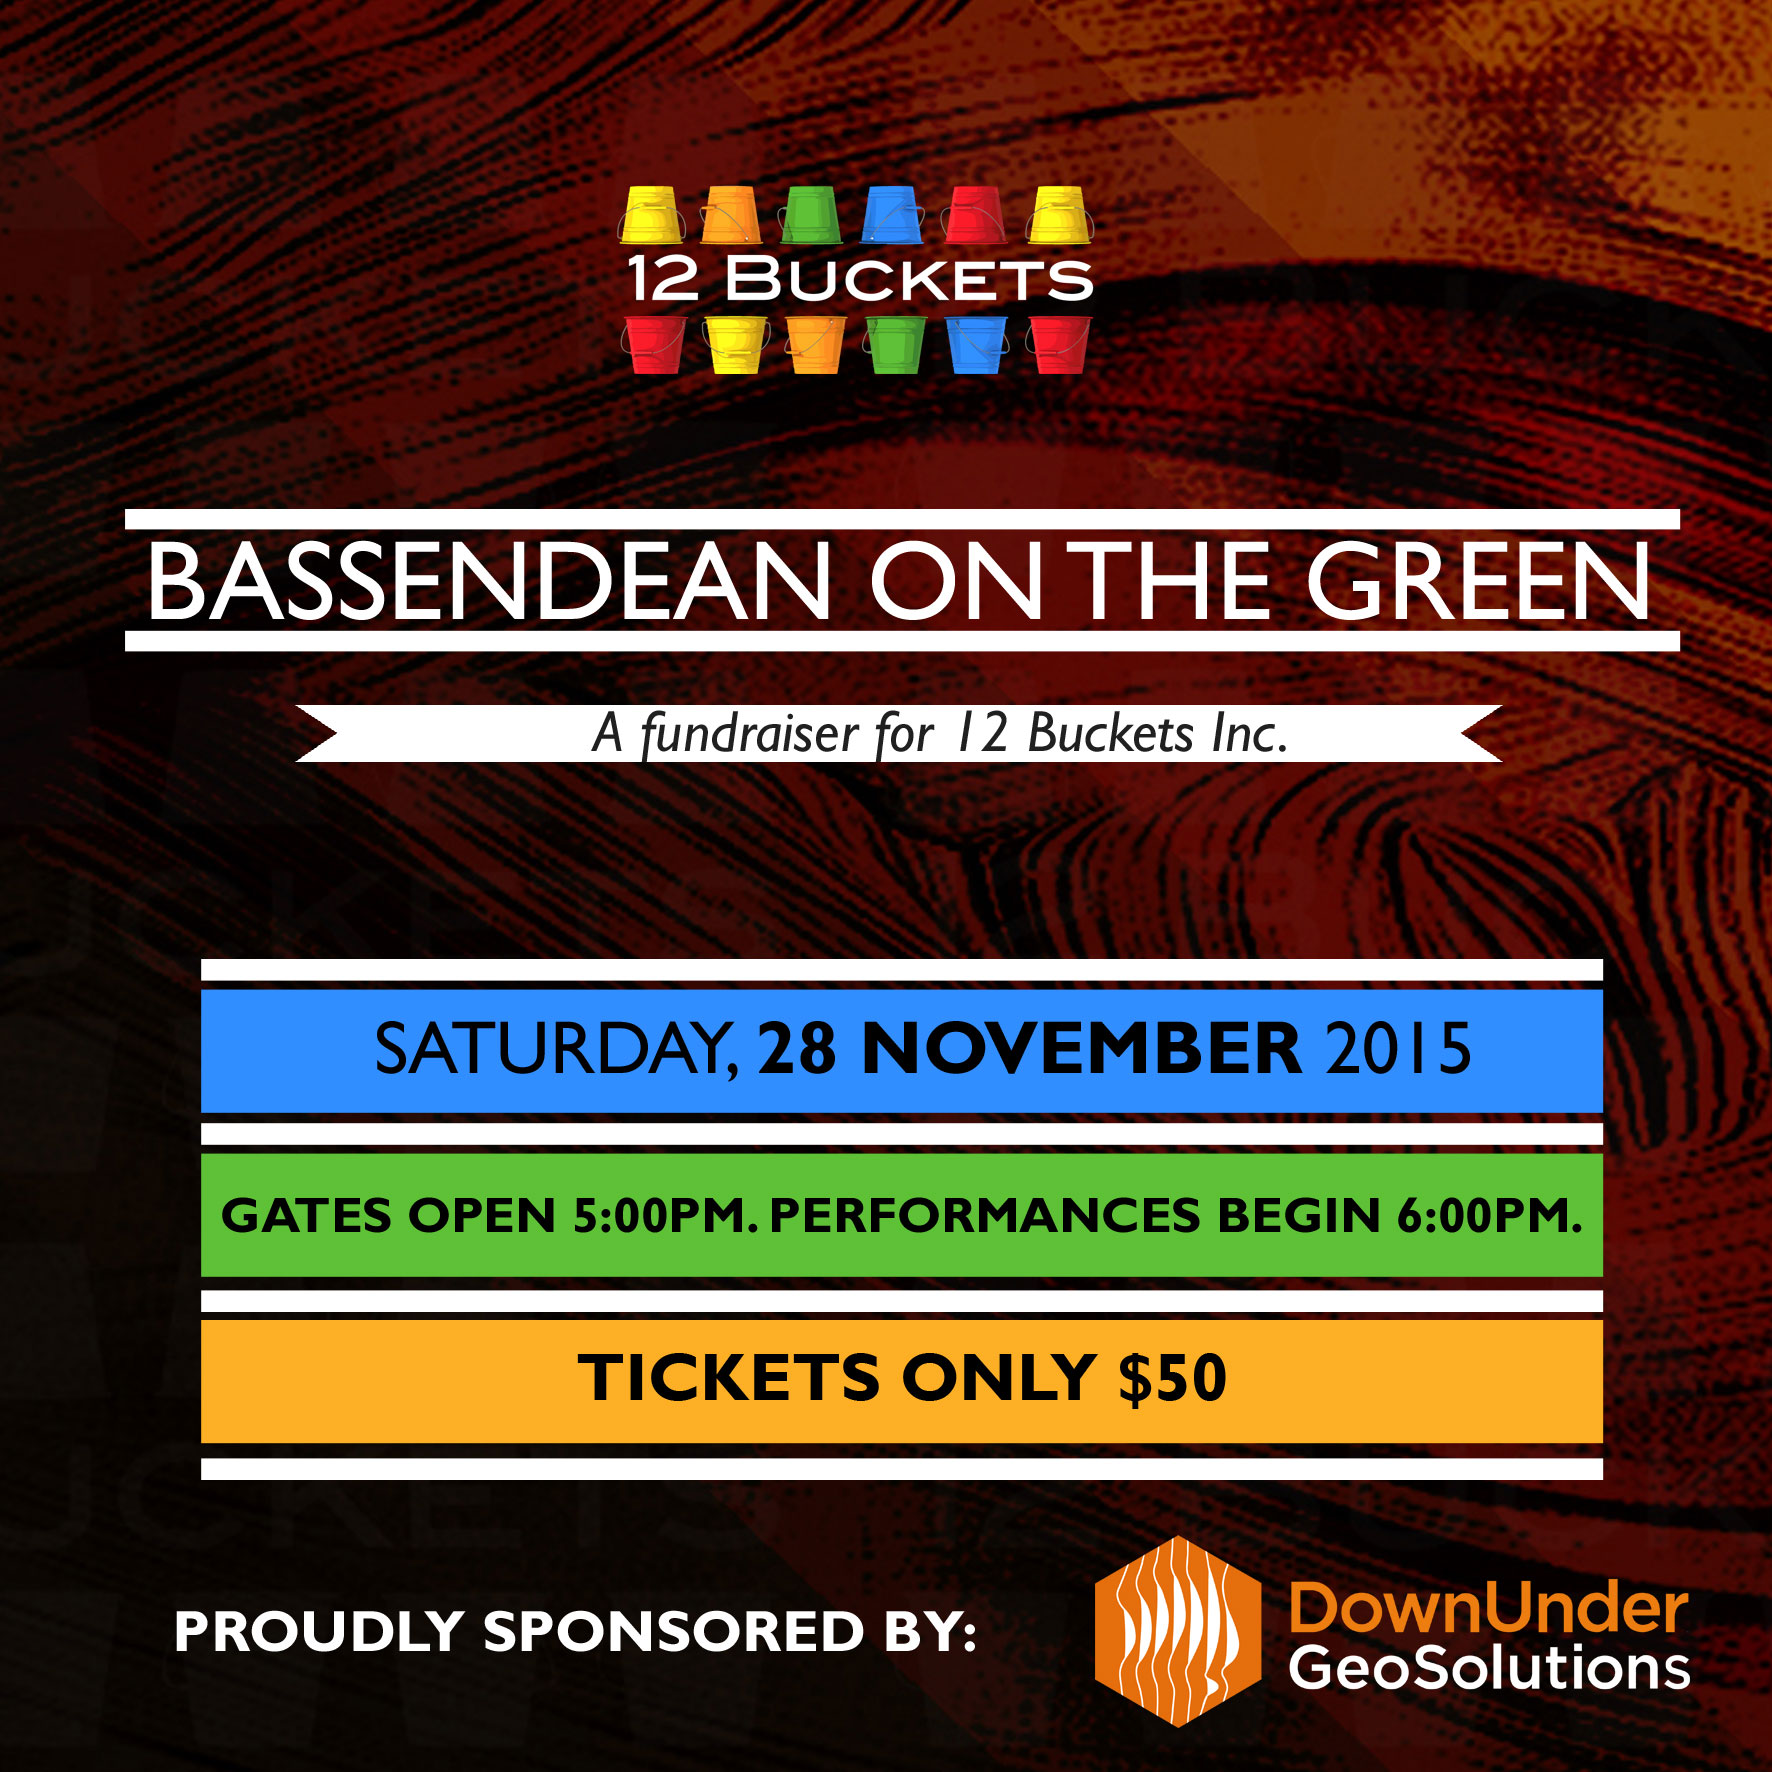 Bassendean on the Green